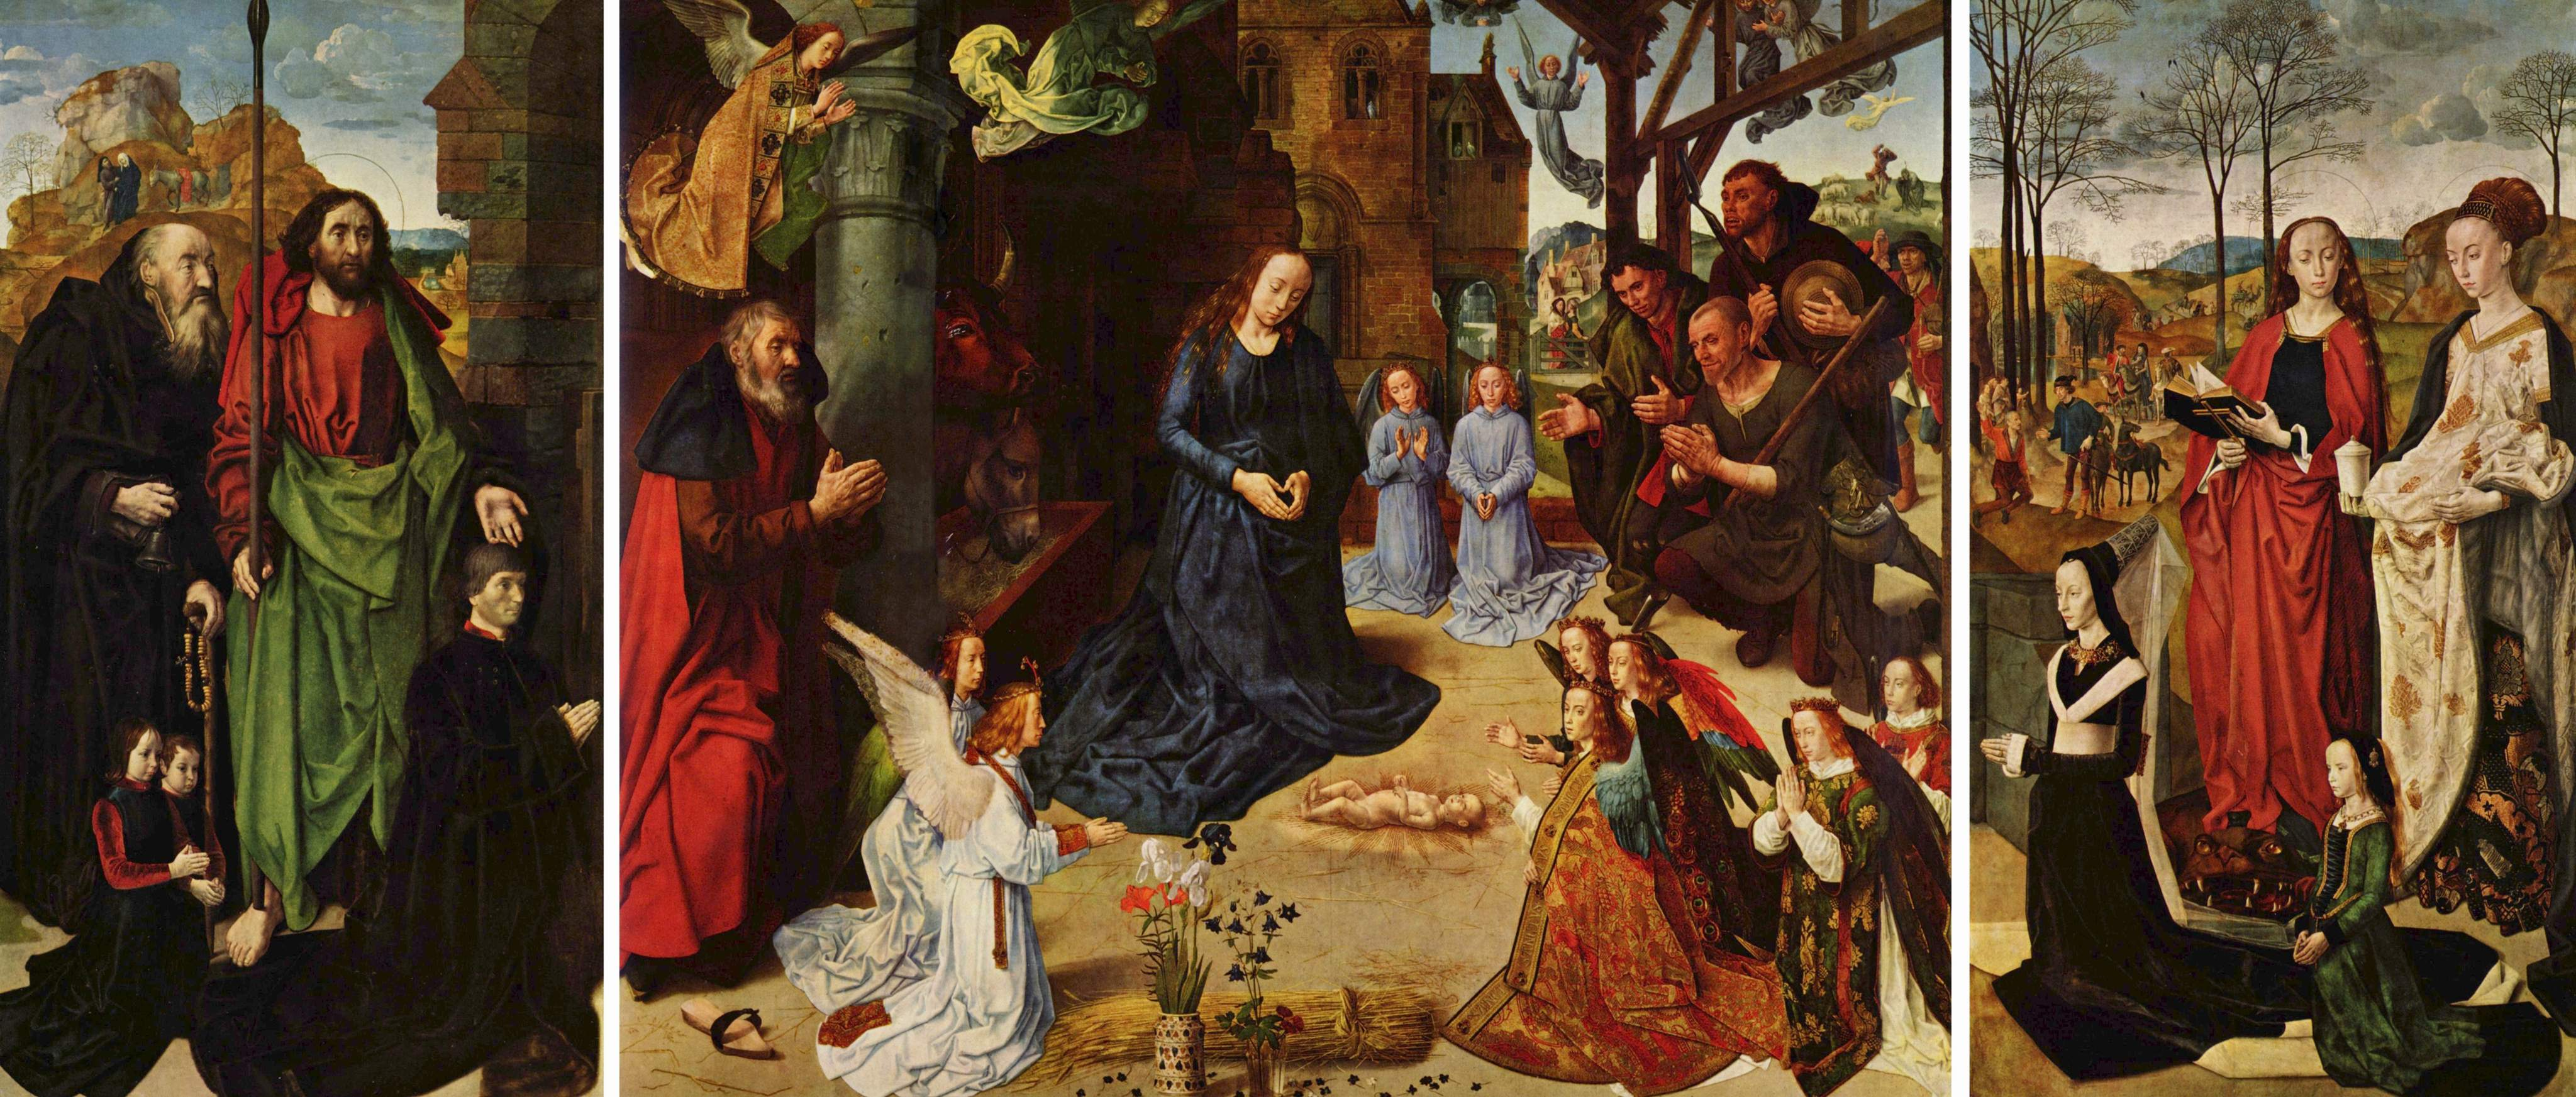 The Portinari Altarpiece by Hugo van der Goes